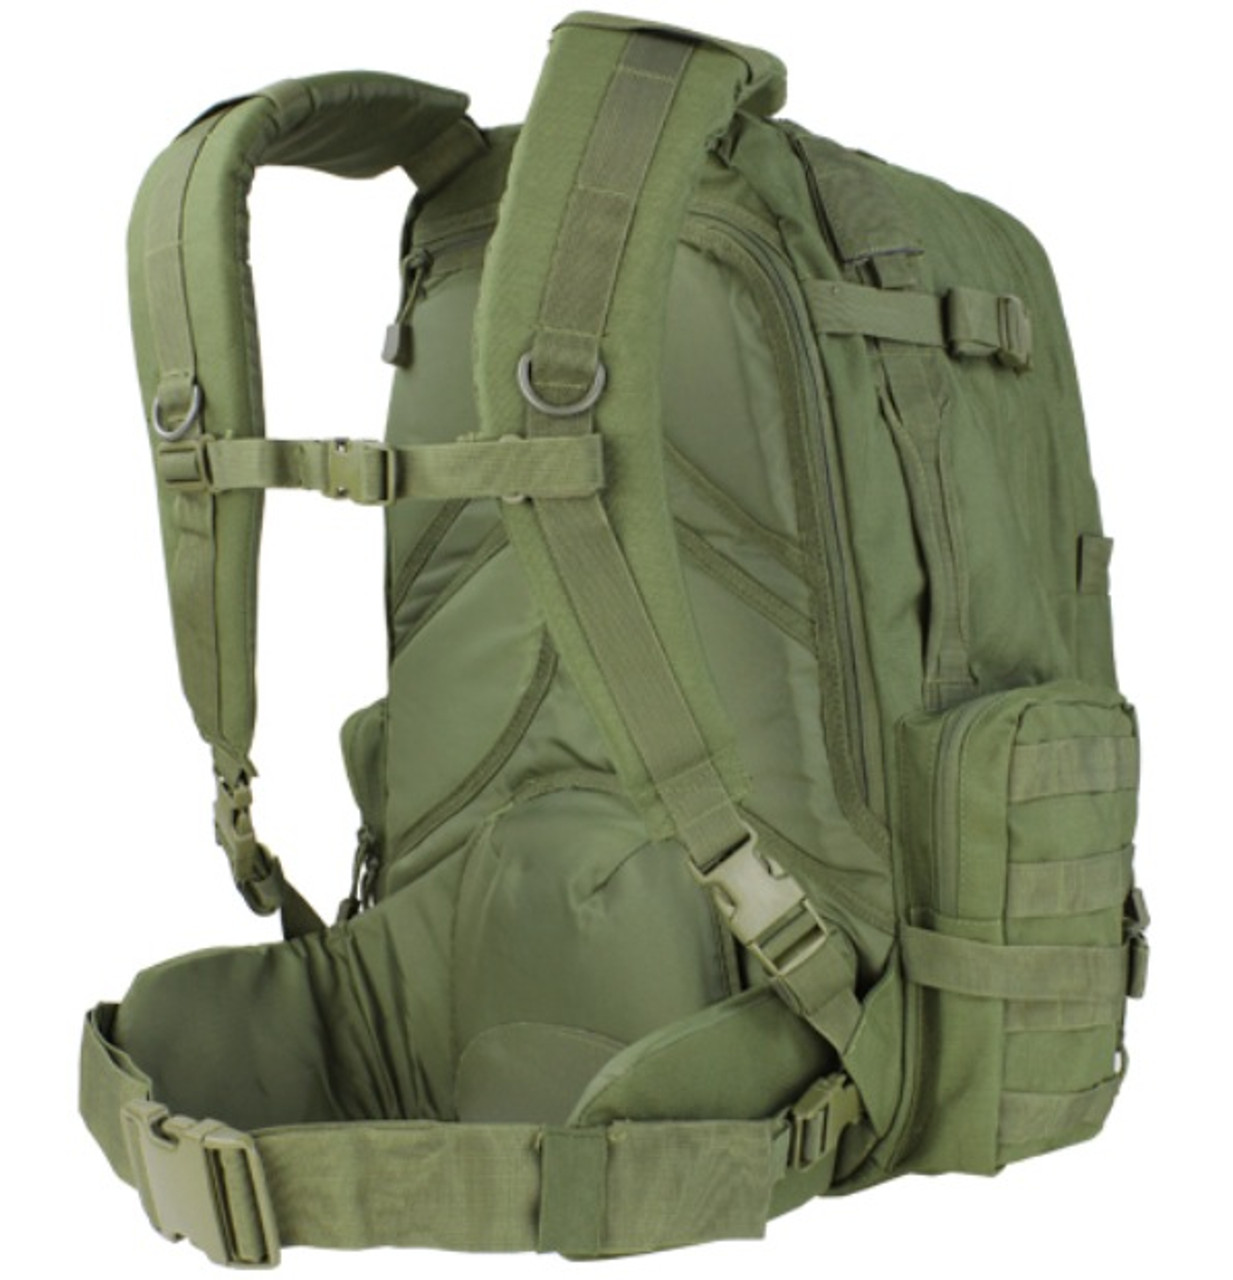 Condor 3-Day Assult Pack